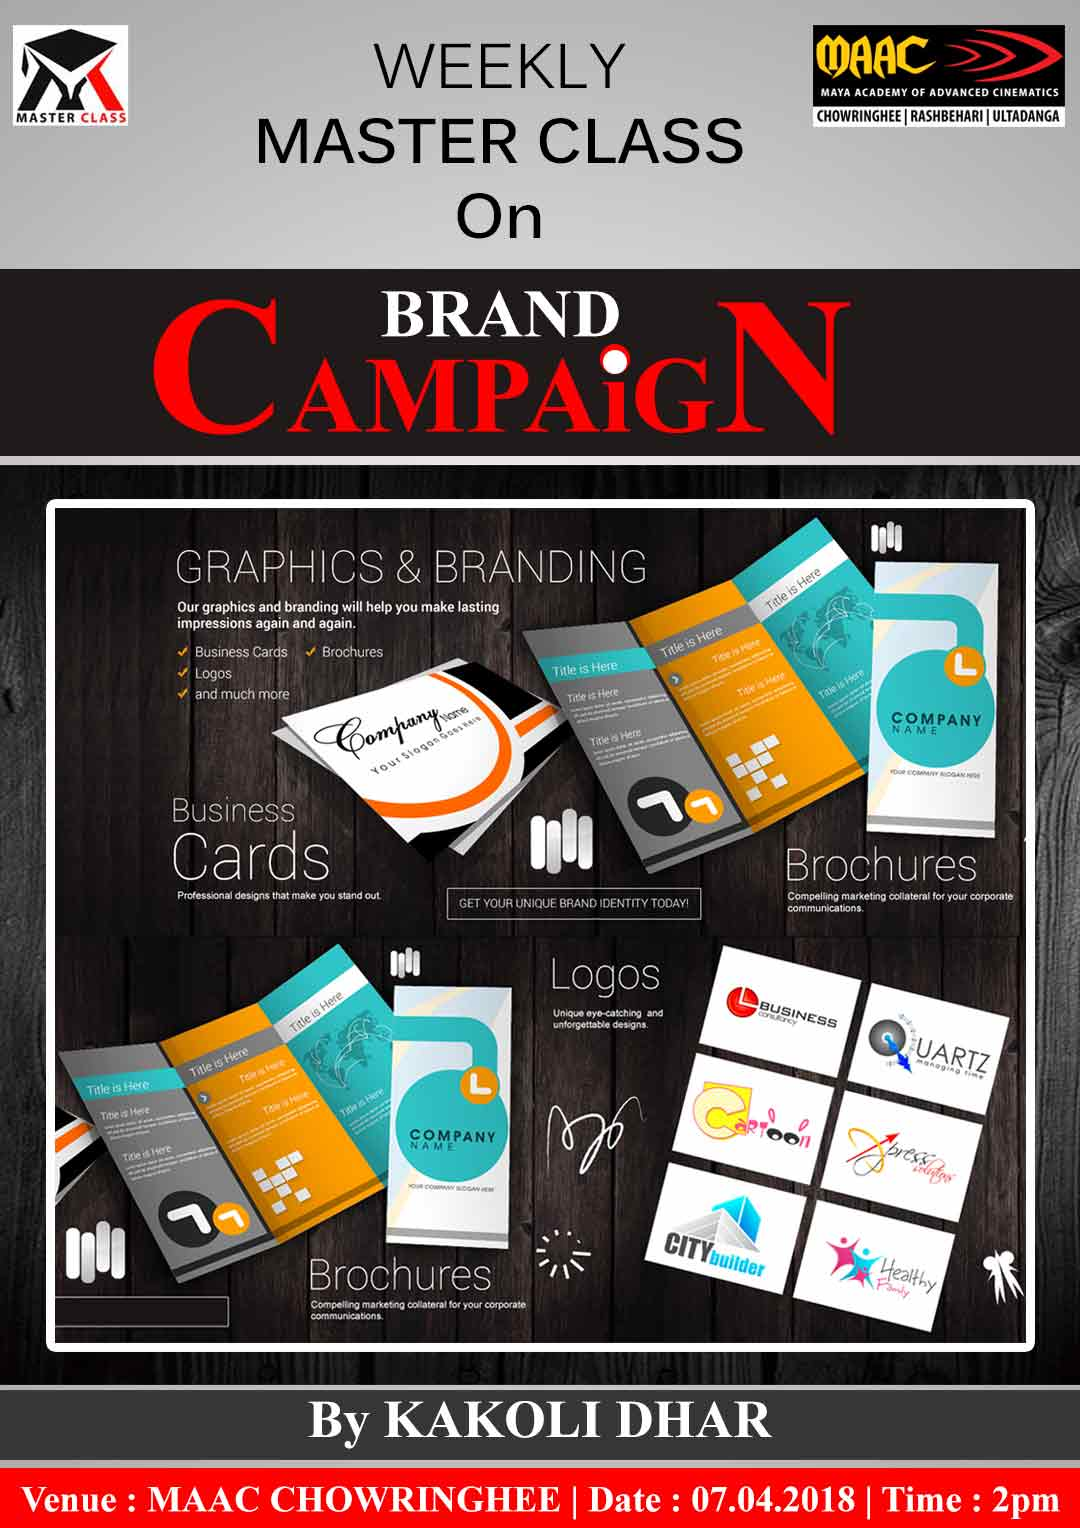 Weekly Master Class on Brand Campaign